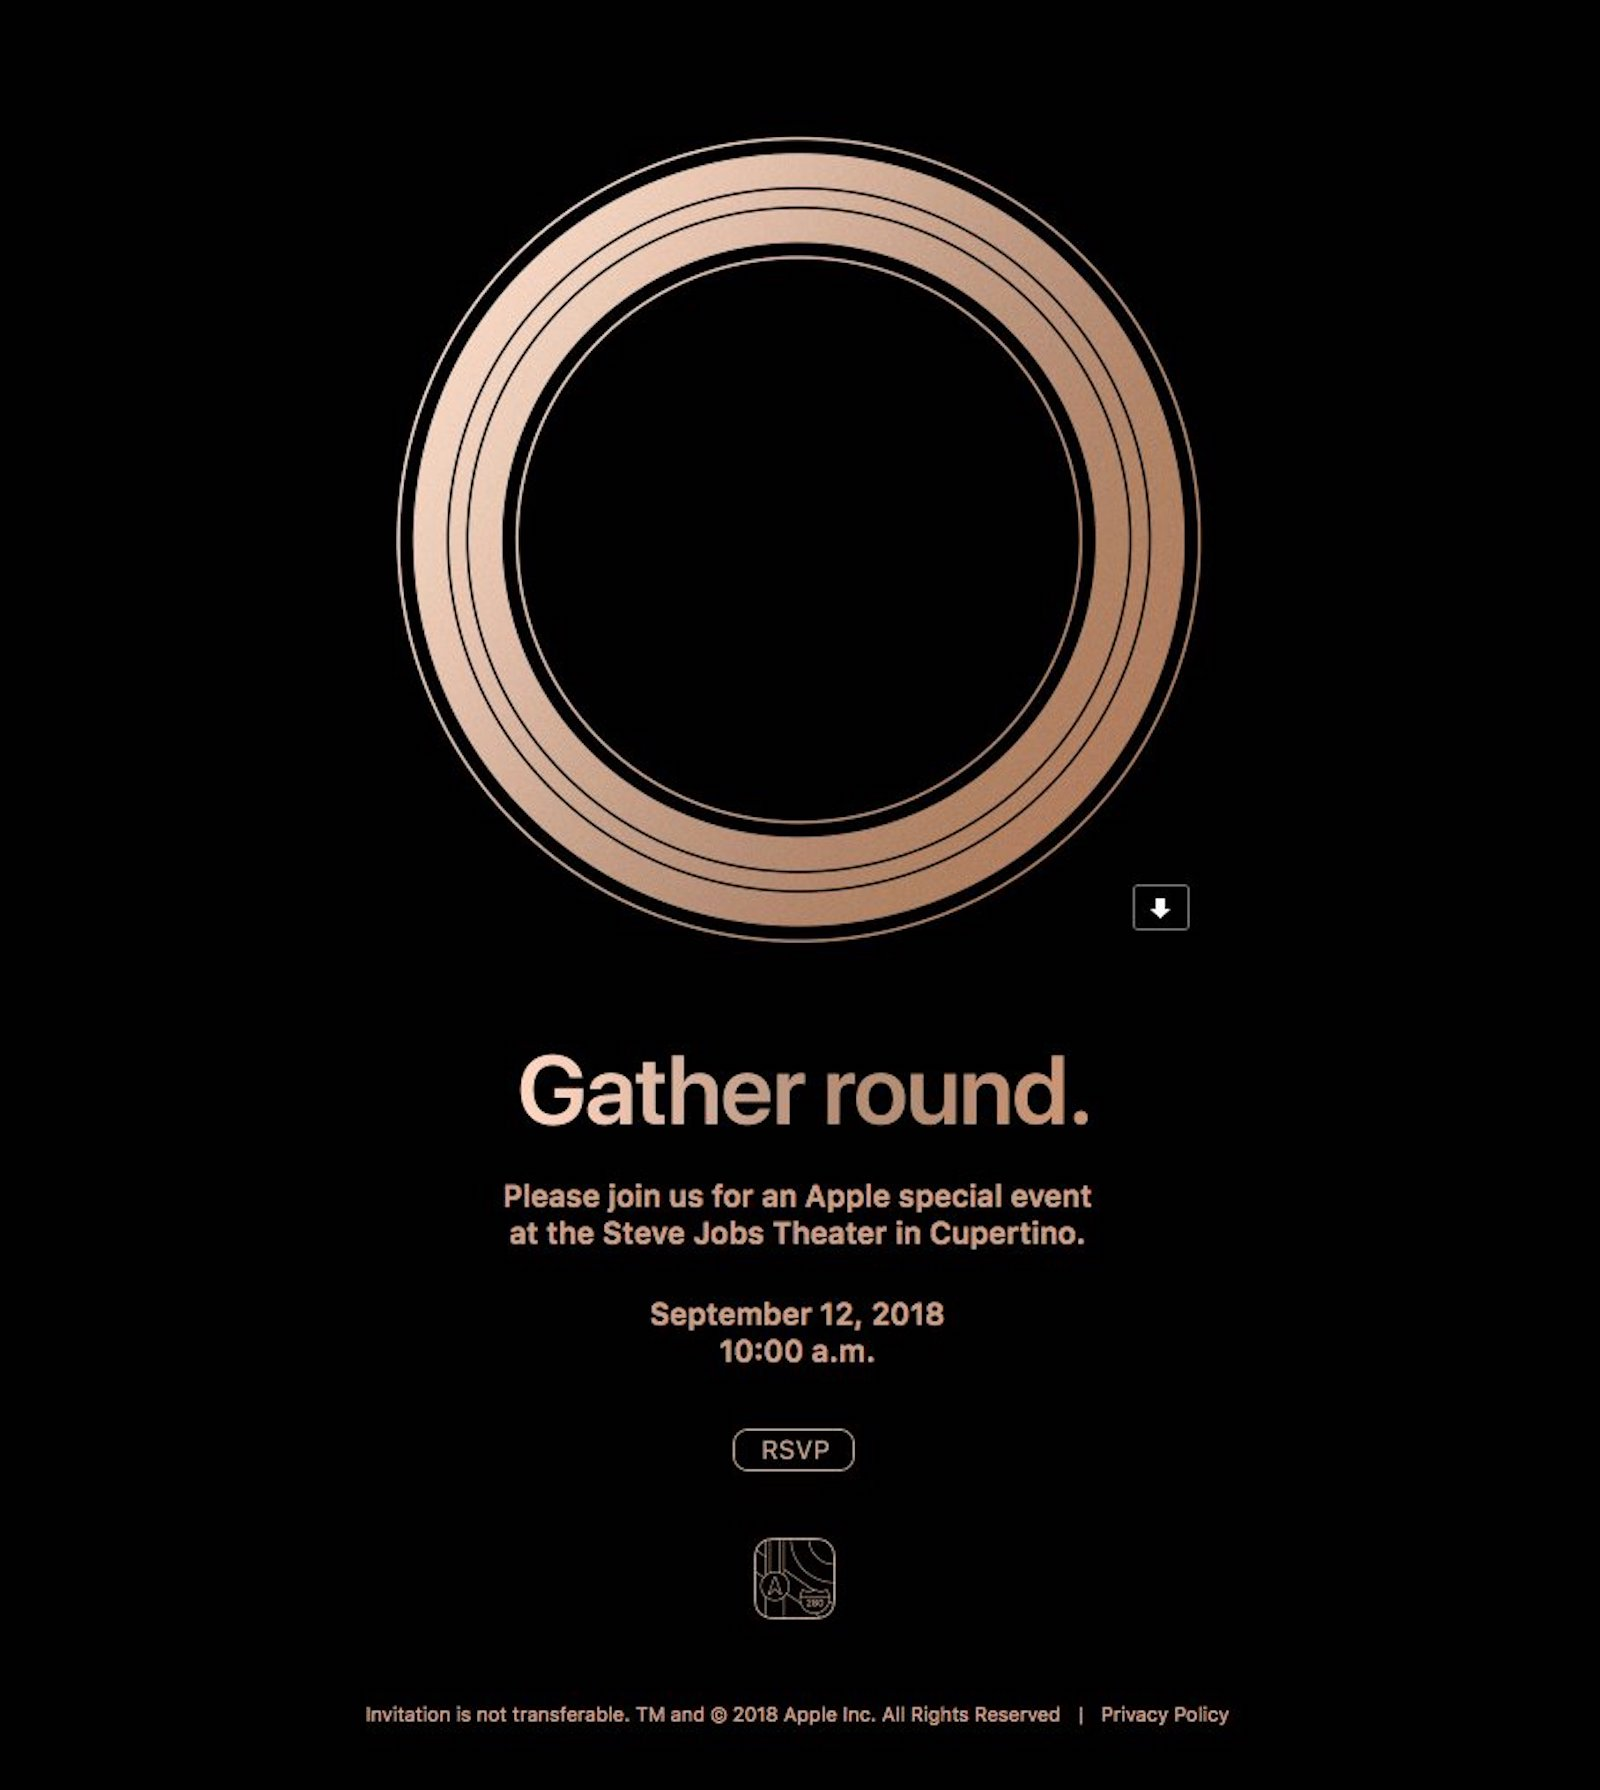 Gather Aroung iphone 2018 event